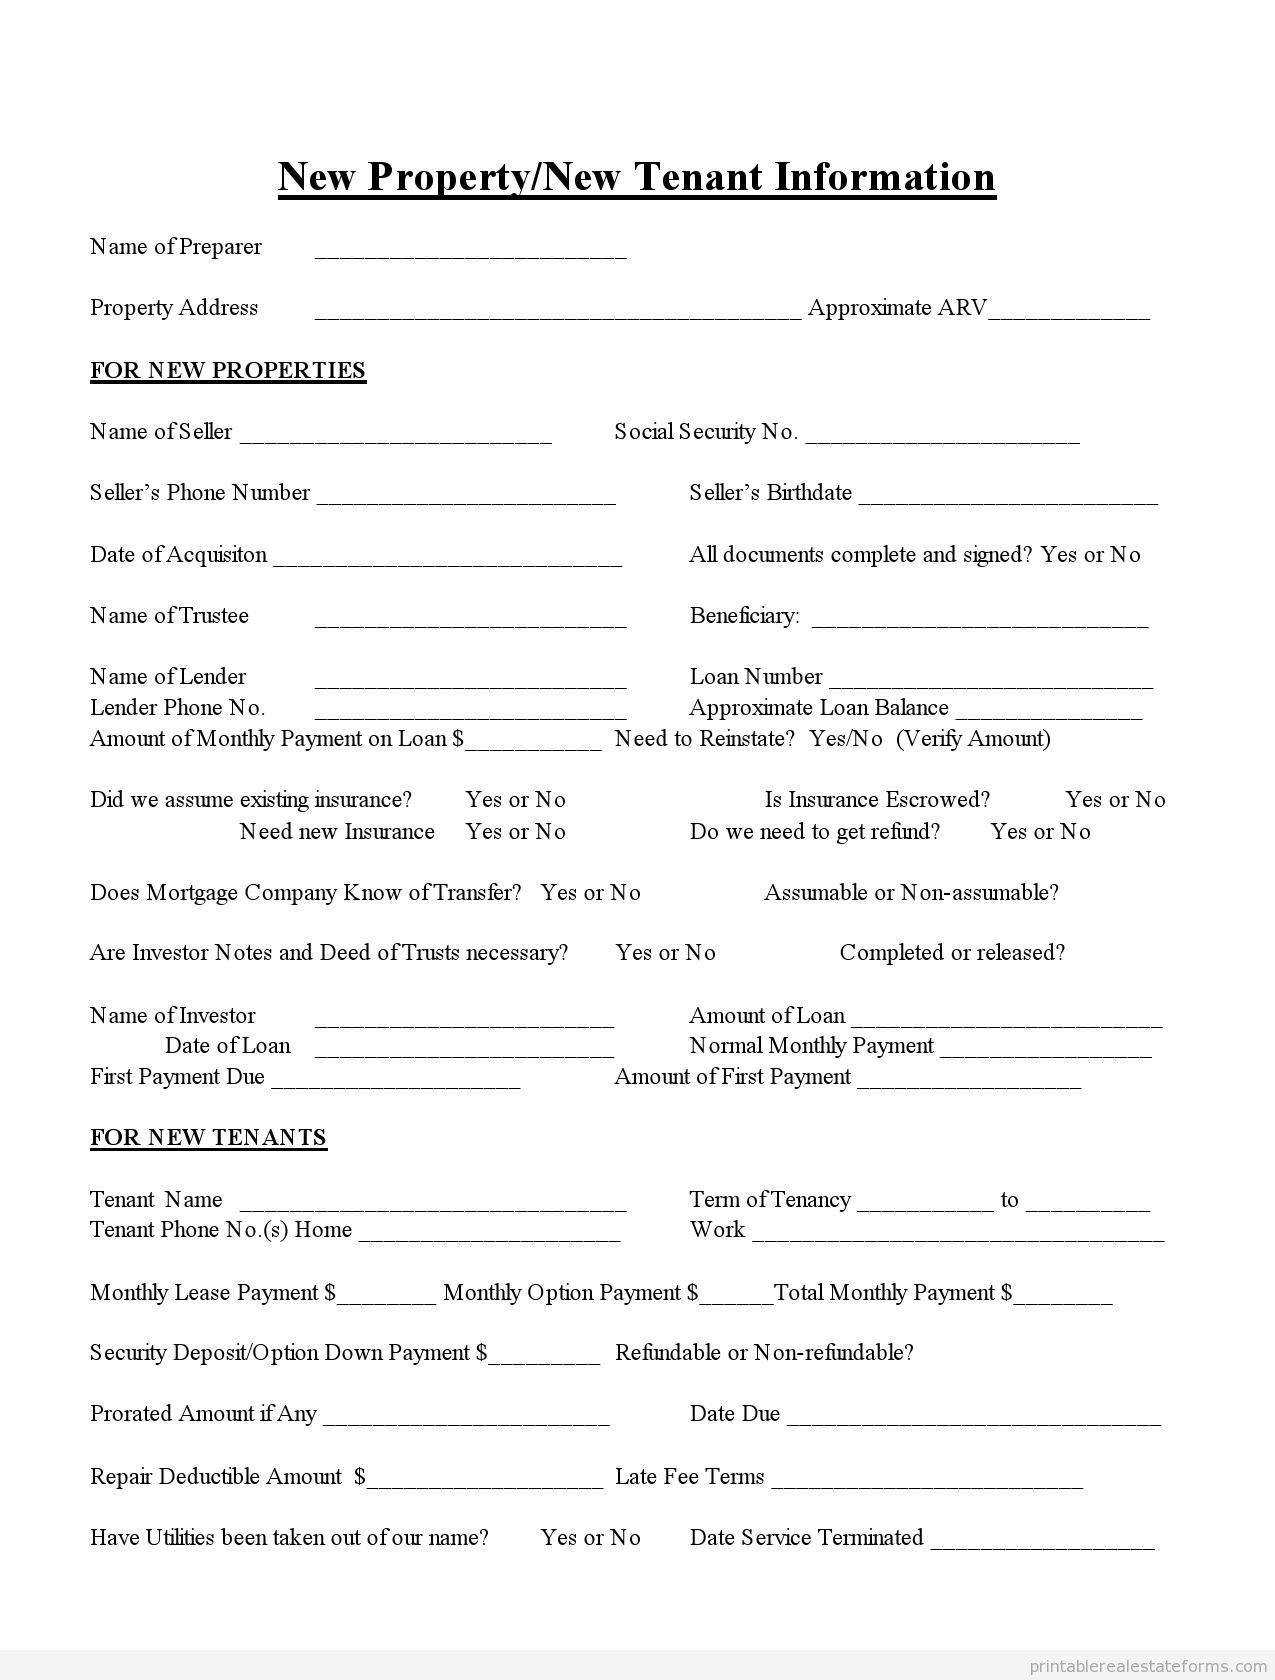 tenant information form Sample Printable new propertynew tenant information Form | Printable ...